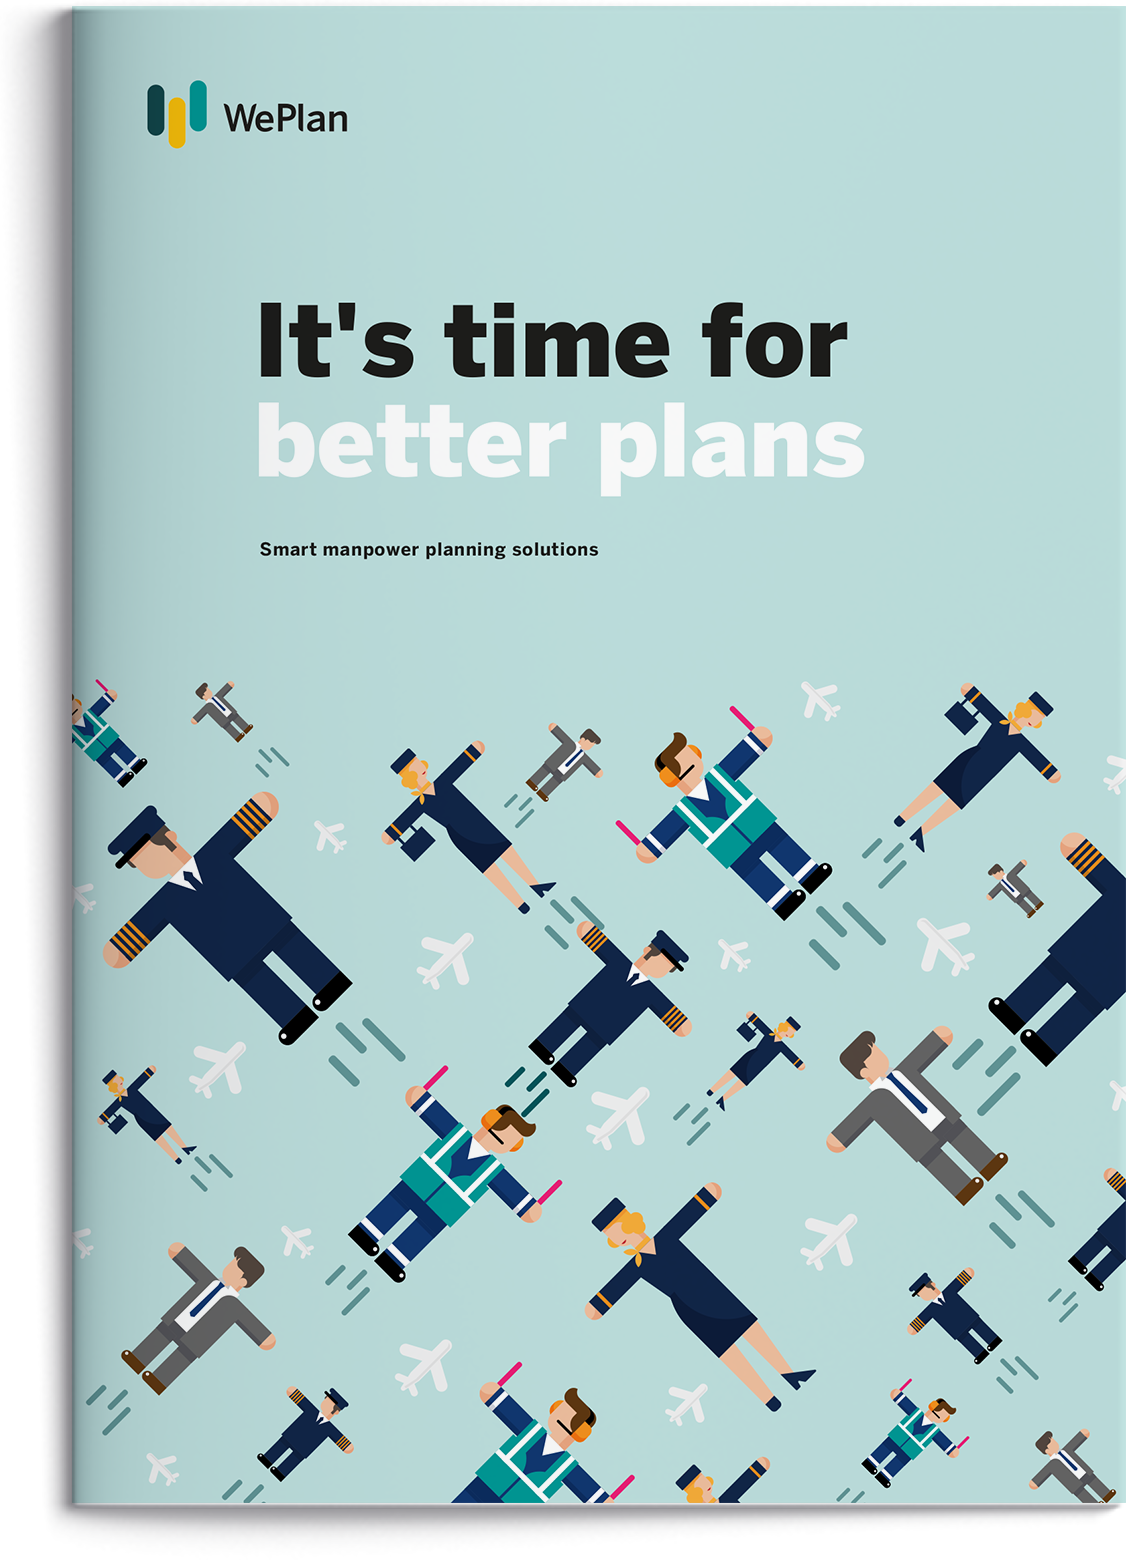 A mockup, showcasing the printed brochure of WePlan with more detail information.